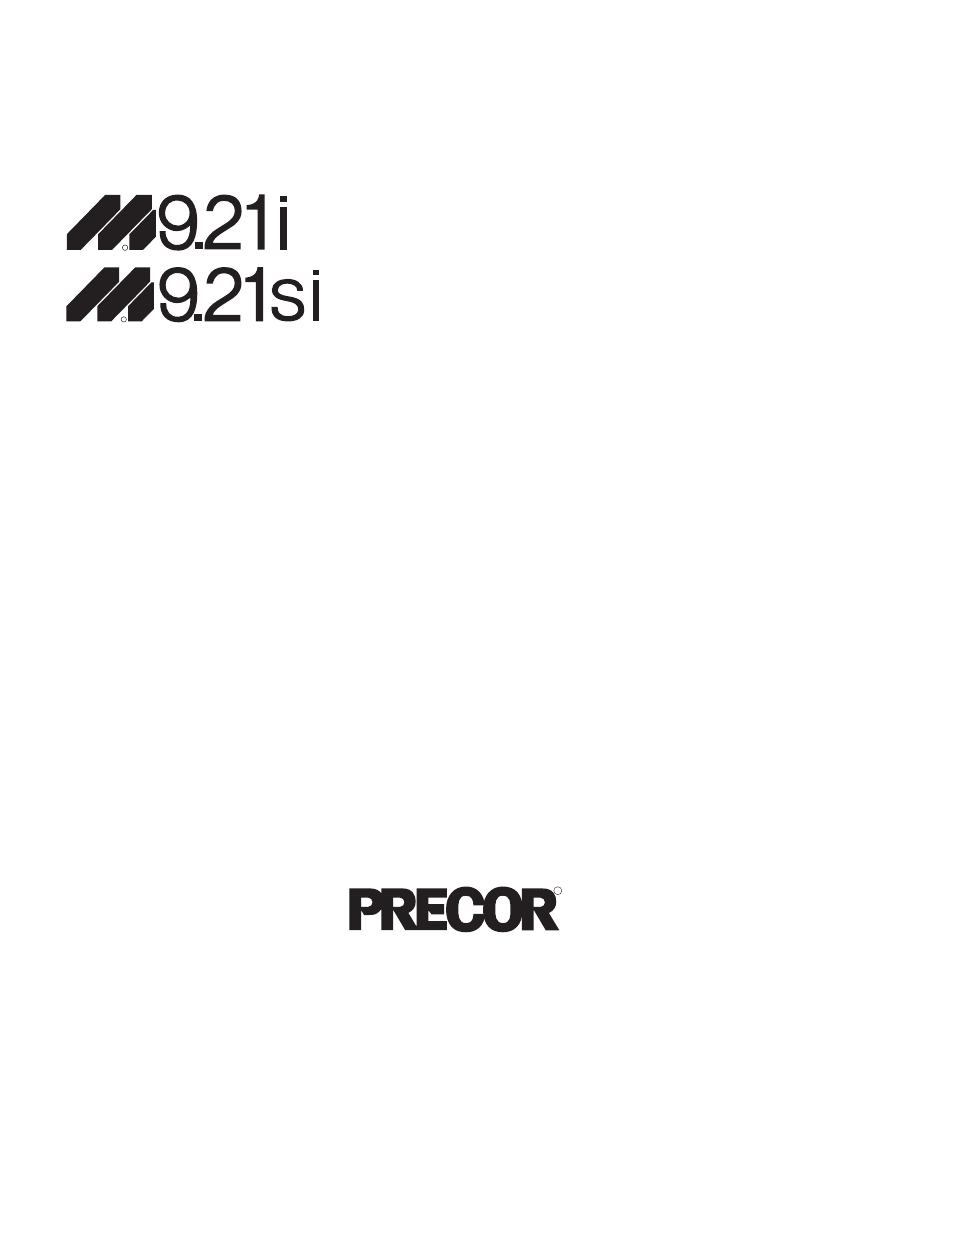 Precor Low Impact S 921i User Manual 36 Pages Treadmill Wiring Diagram